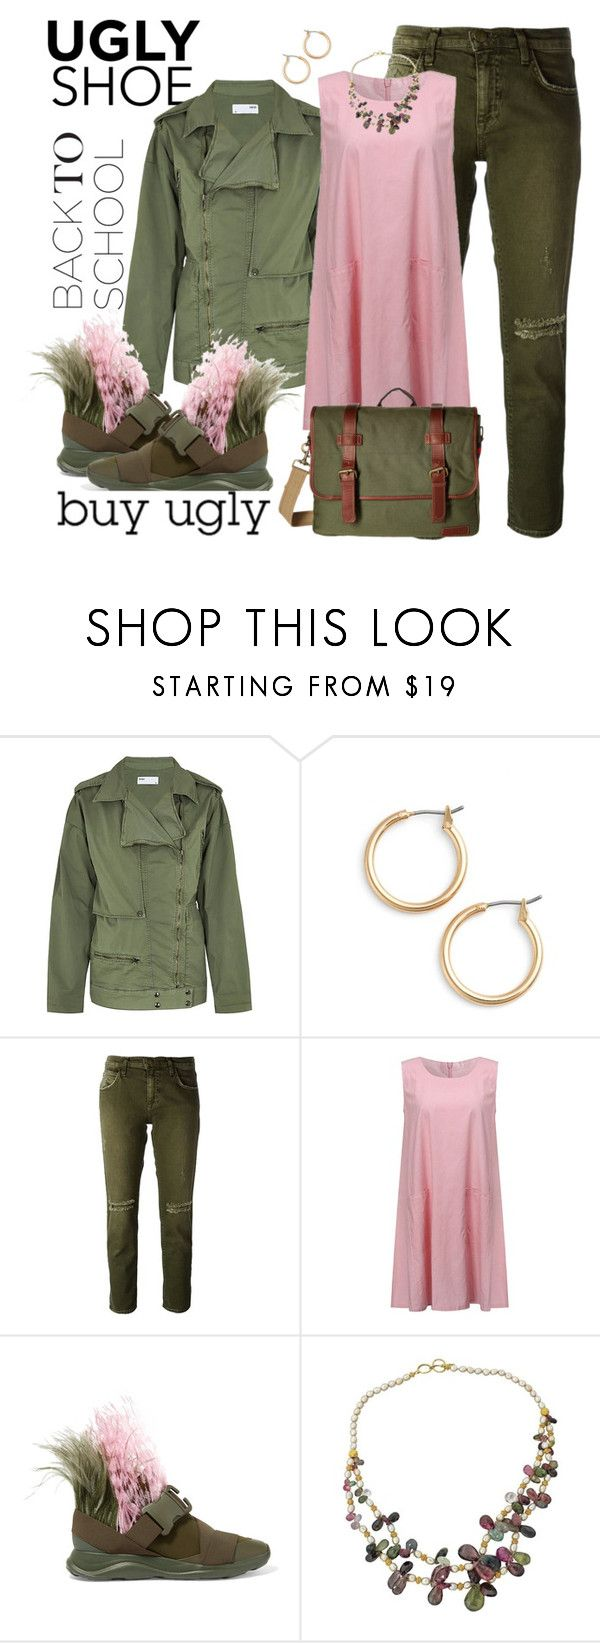 """someone's going to wear them"" by ffendi ❤ liked on Polyvore featuring Reiko, Nordstrom, Current/Elliott, Christopher Kane, Tommy Hilfiger and uglyshoe"